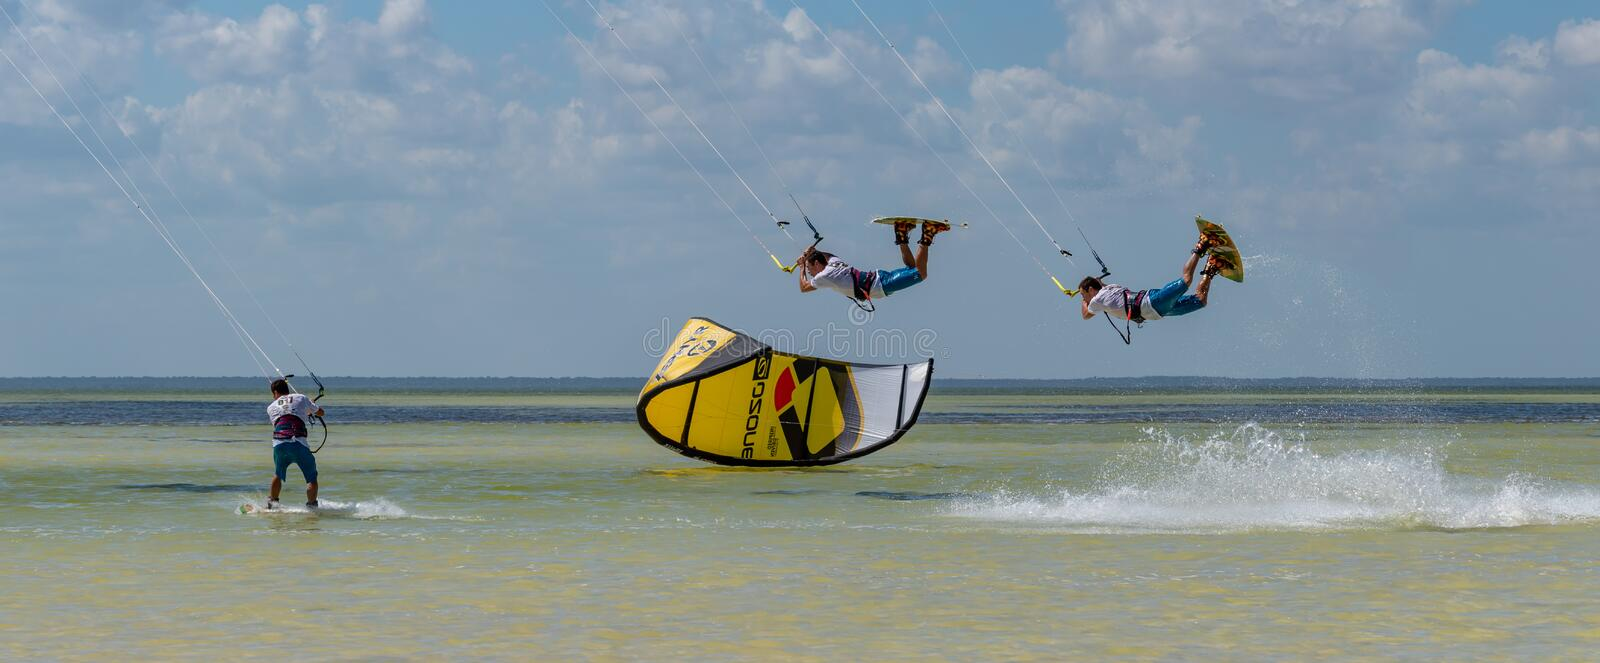 CANCUN, MEXICO - 02/18/2018: Adrenalin Kitesurf. stock photography